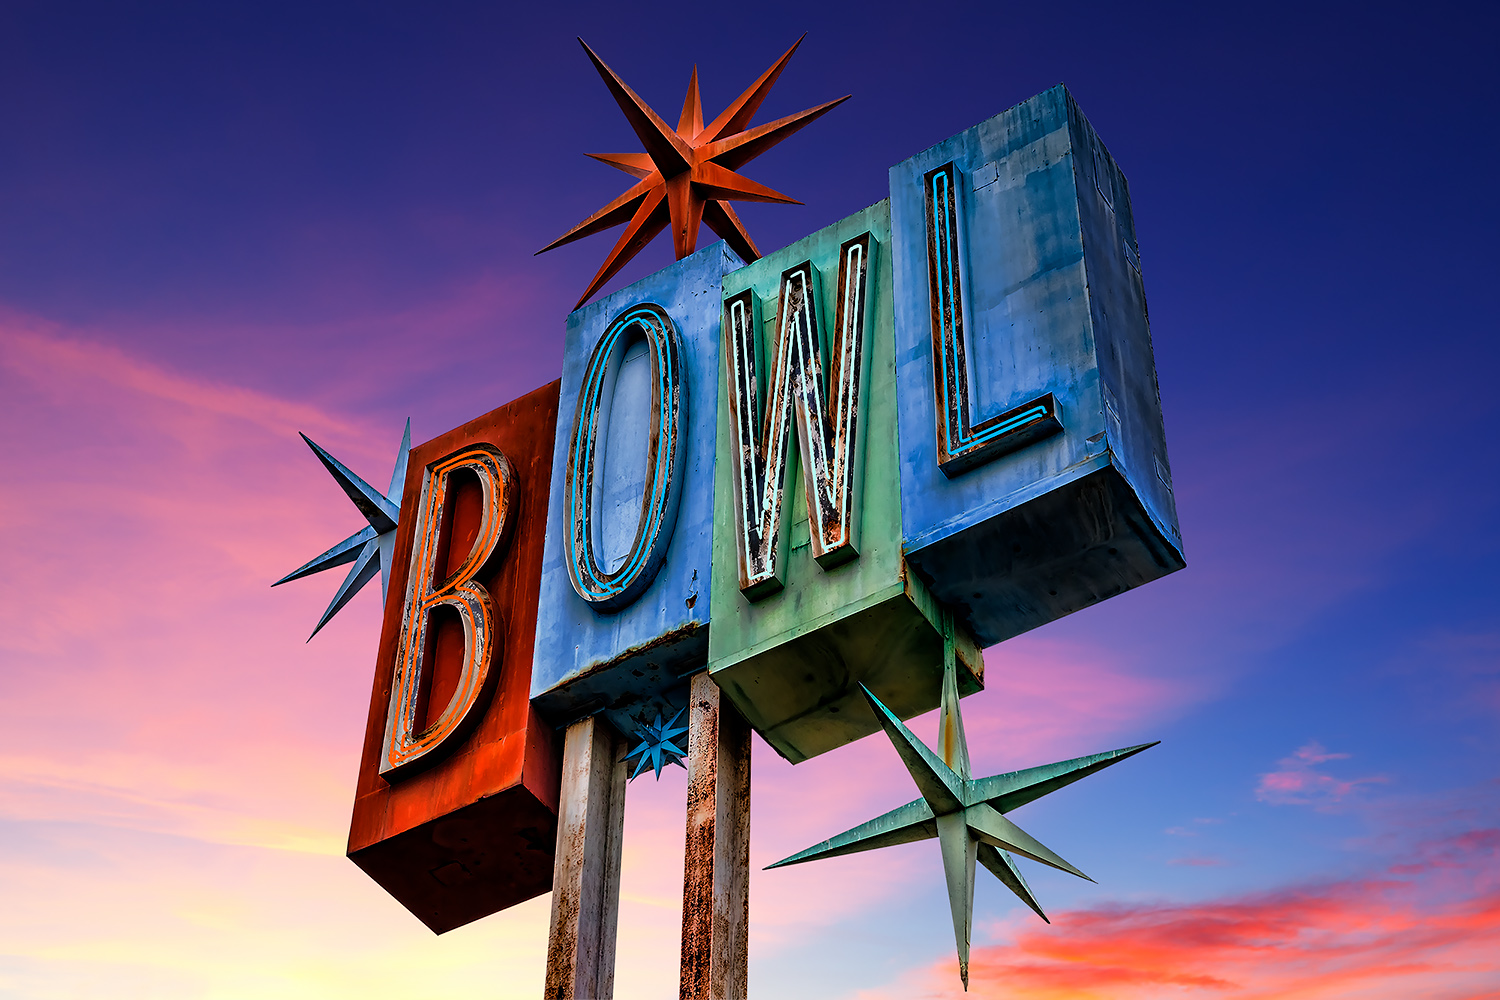 retro-bowling-alley-sign-neon-kelley-king-photography-4.jpg